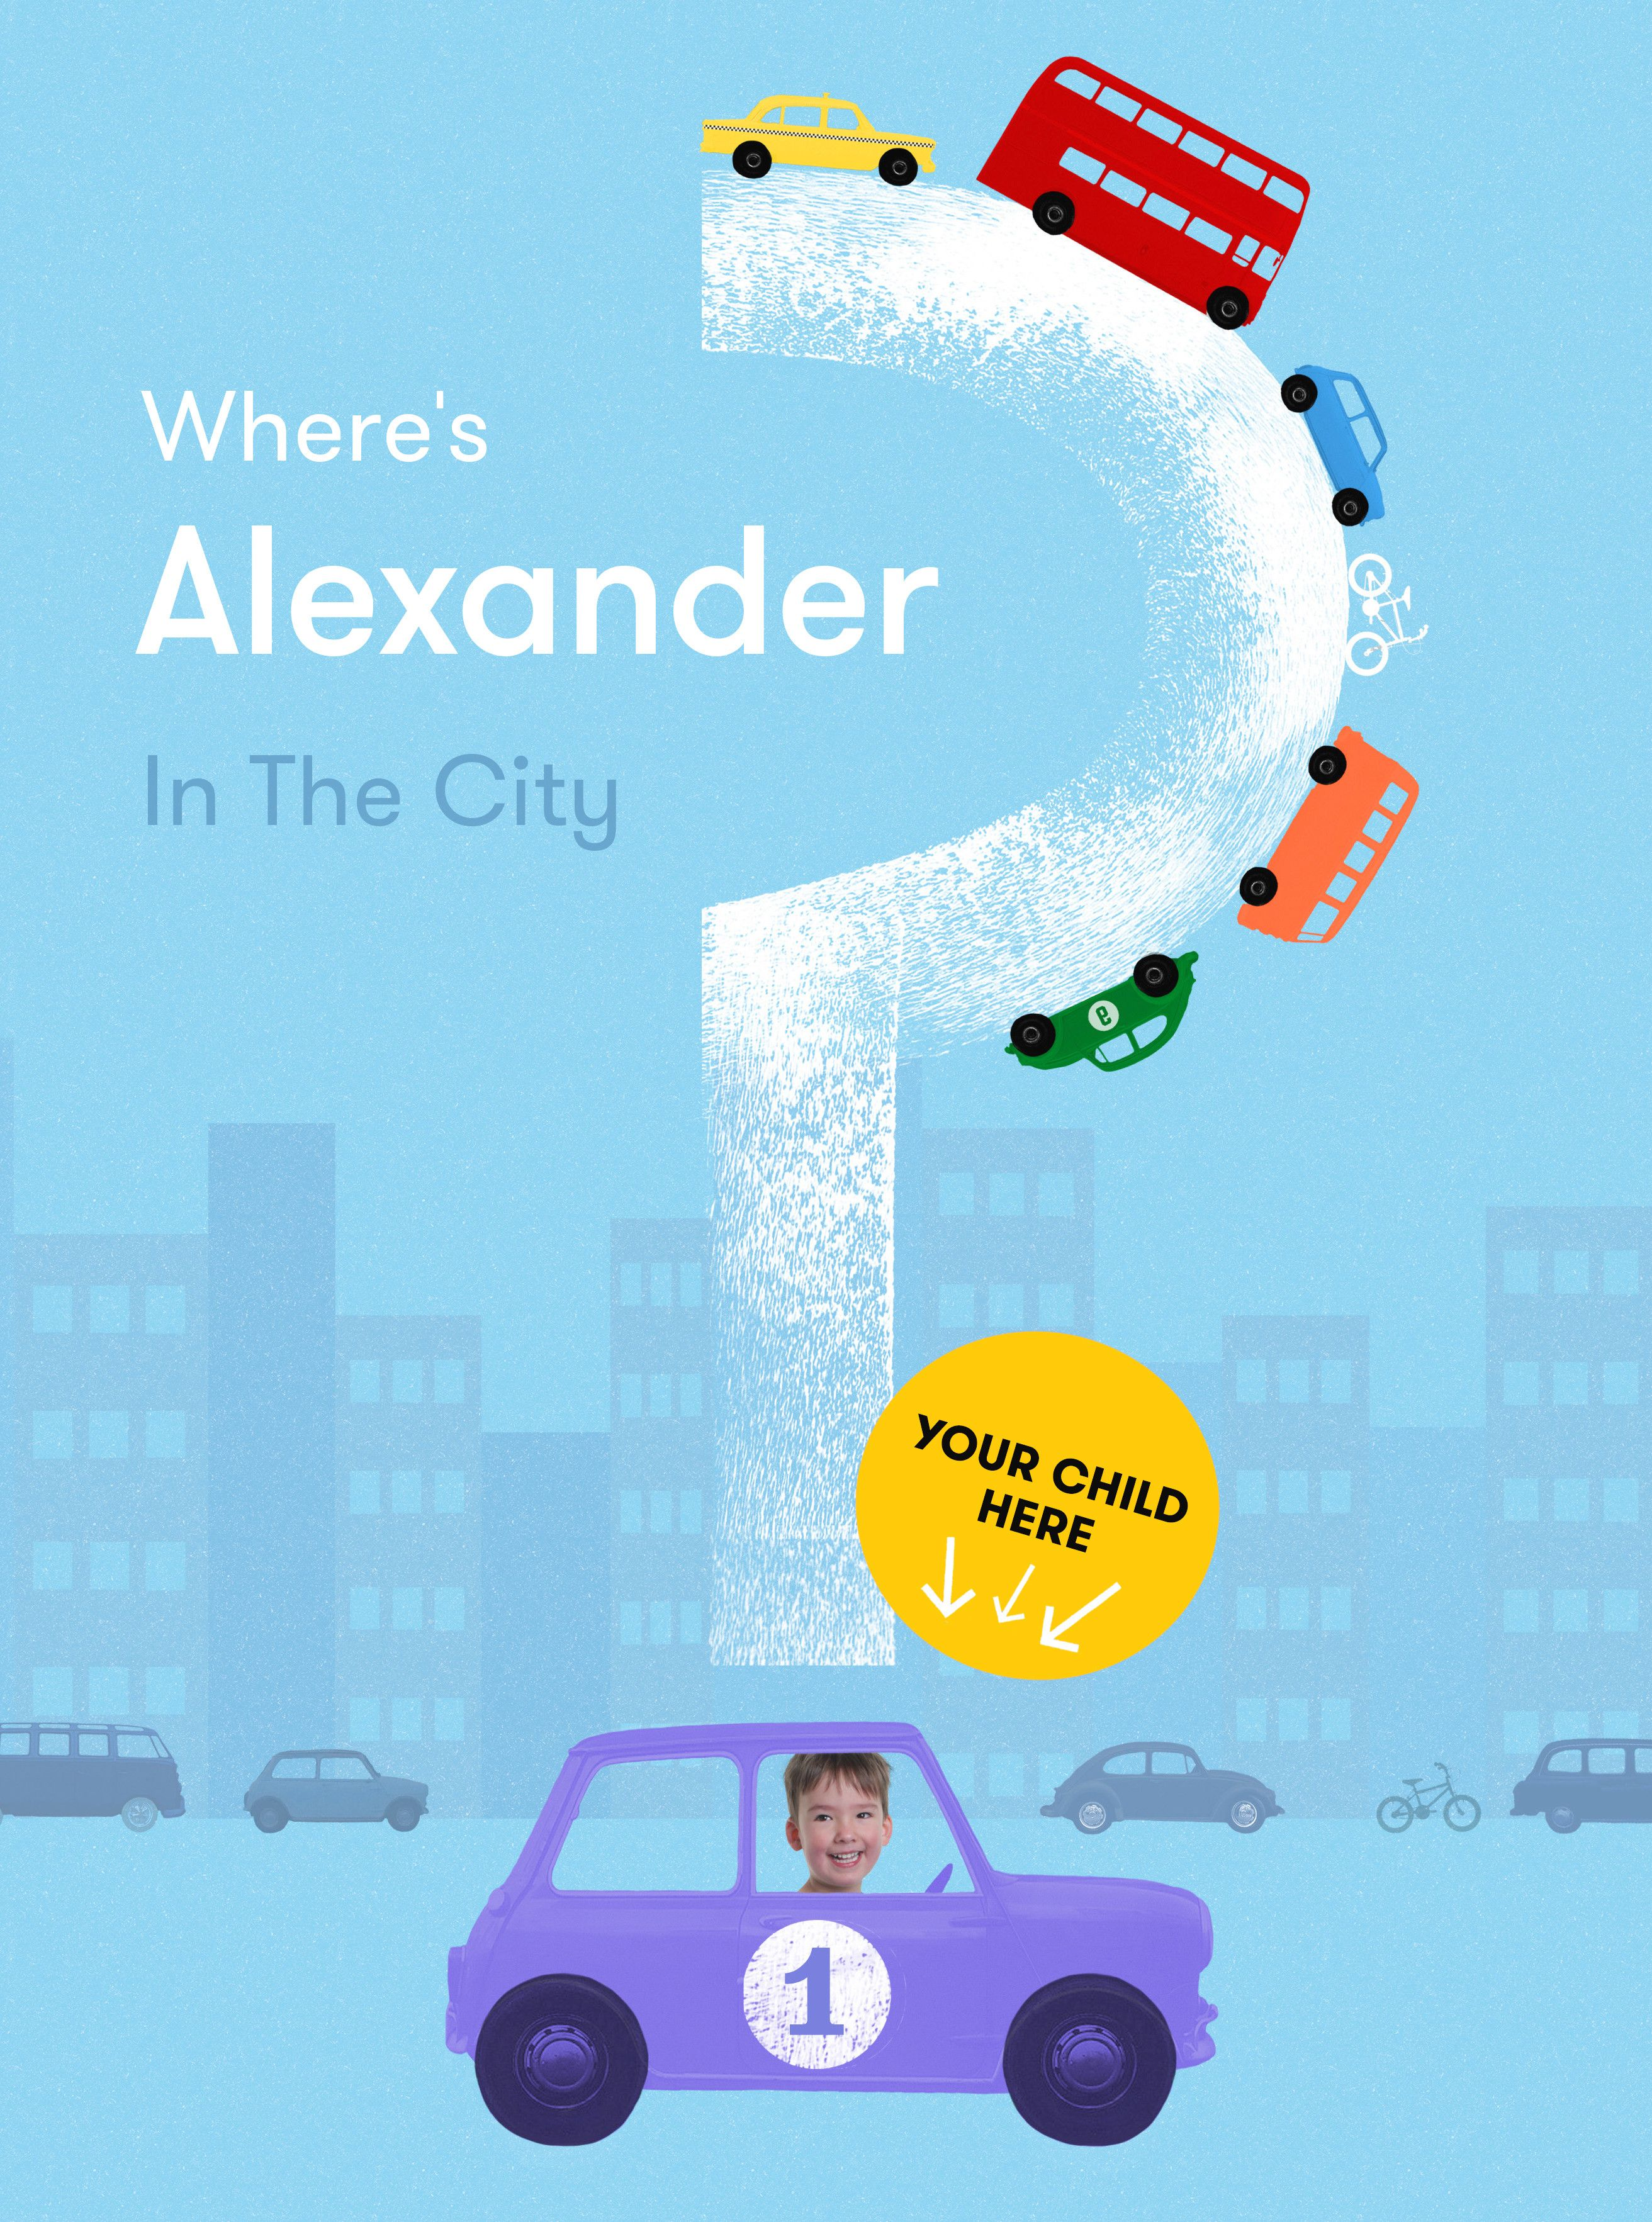 The wonderful cover from our new personalised kids book HeyWow! 'In the City' Your childs face and name will appear on the cover and in all 12 beautifully illustrated city scenes. Just send us a photo of your child and we'll do the rest. Find out more: https://www.kickstarter.com/projects/39150986/an-amazing-personalised-picture-book-for-kids  #heywowbooks #kidsbooks #picturebooks #personalisedbooks #giftbooks #childrensbooks